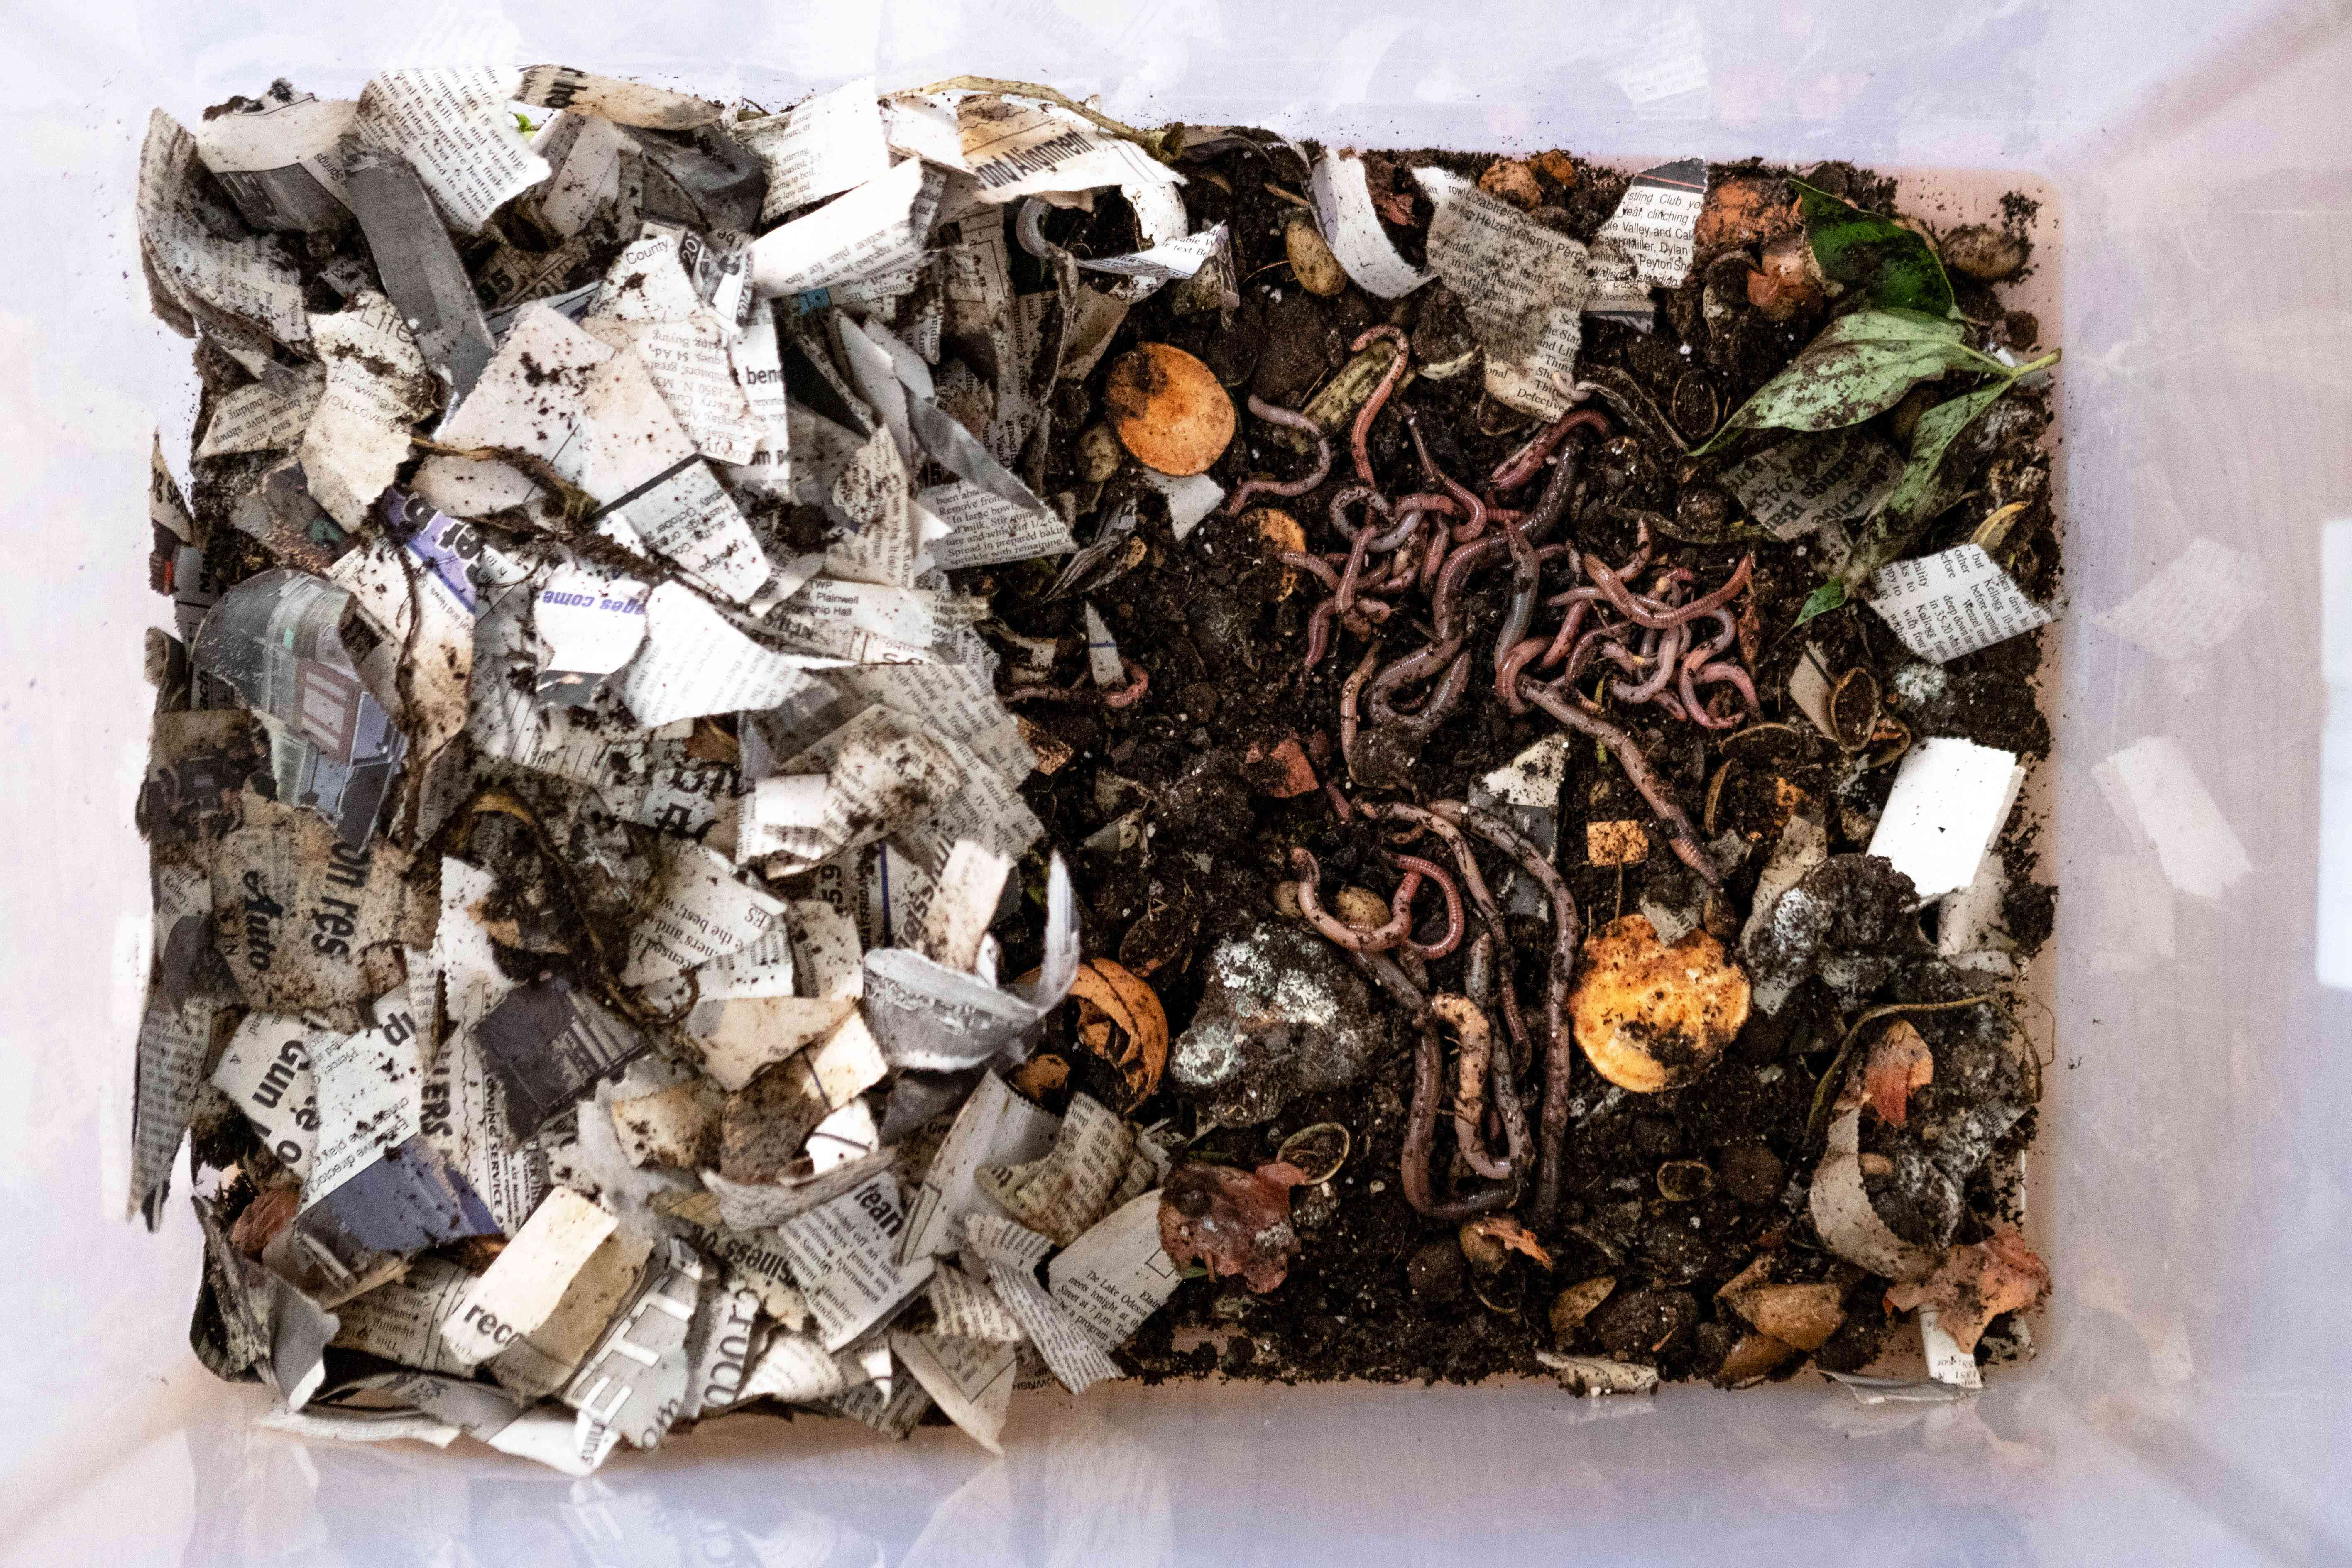 overhead view of vermicomposting with wet newspaper, worms, and food scraps